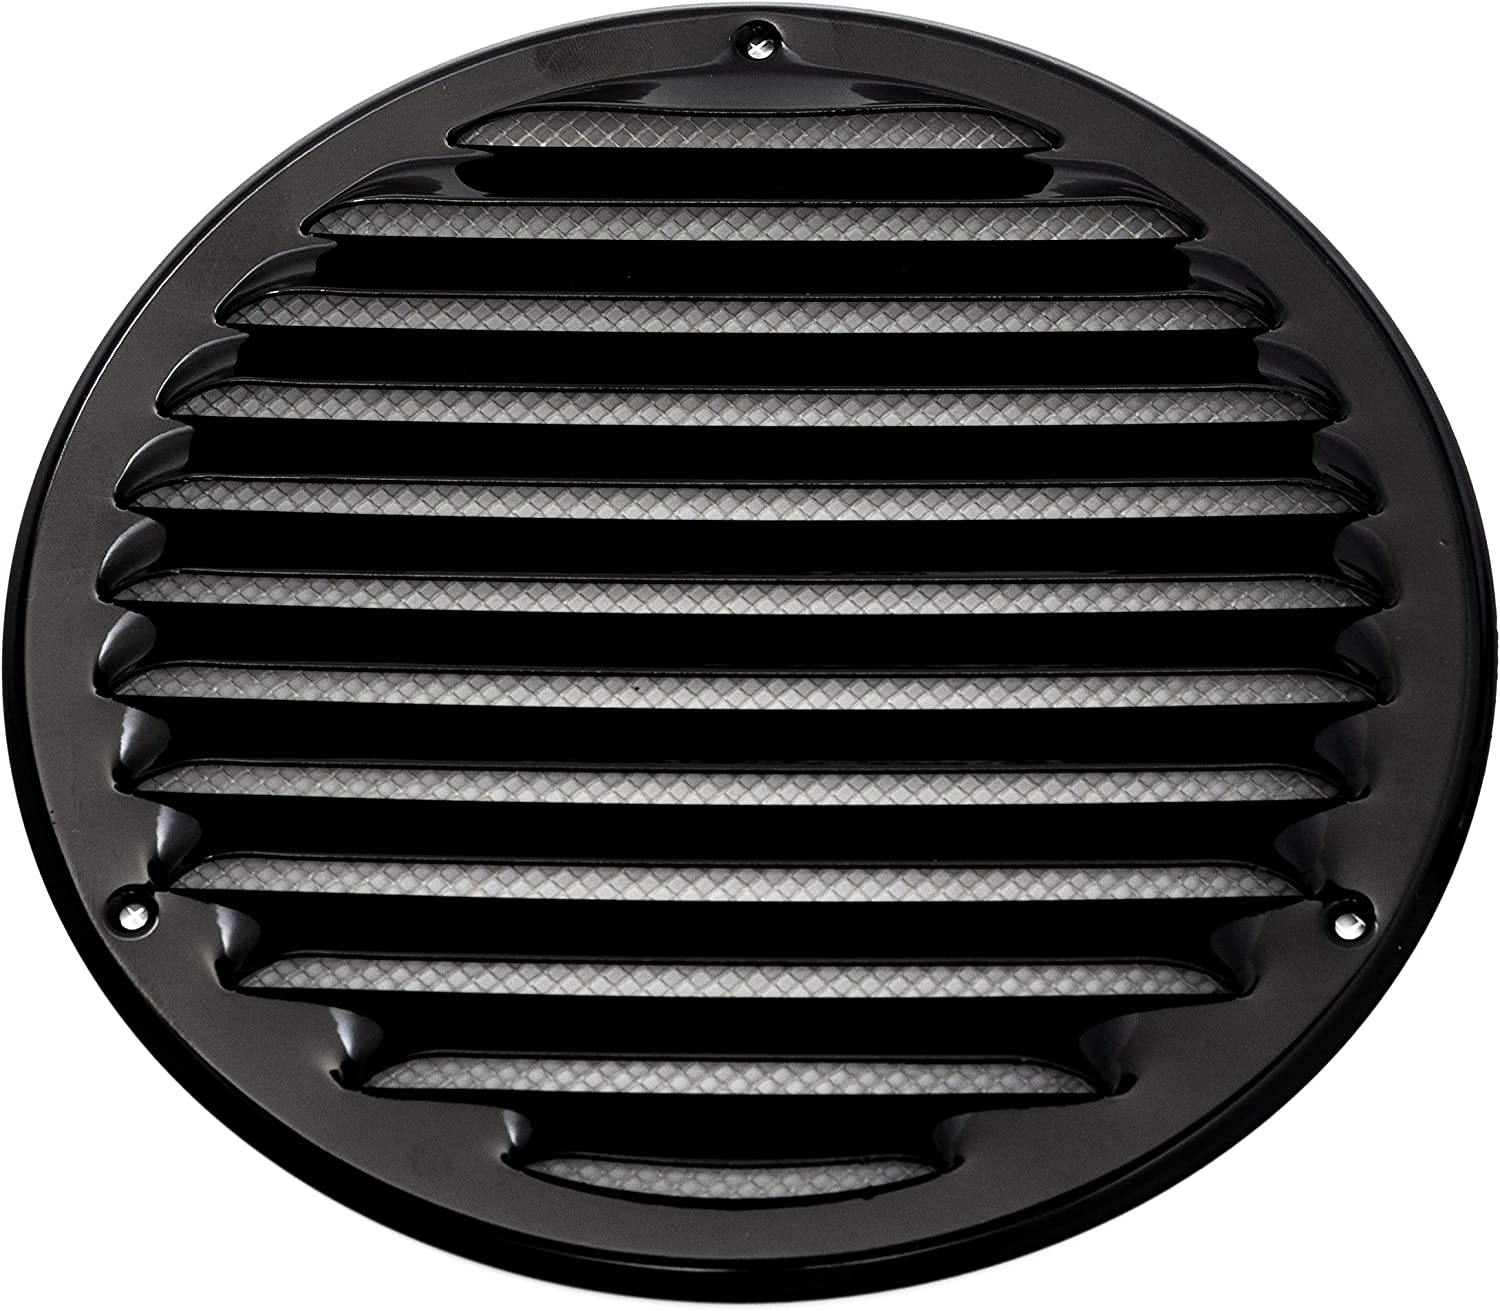 Vent Systems 8'' Inch Black Soffit Vent Cover - Round Air Vent Louver - Grill Cover - Built-in Insect Screen - HVAC Vents for Bathroom, Home Office, Kitchen